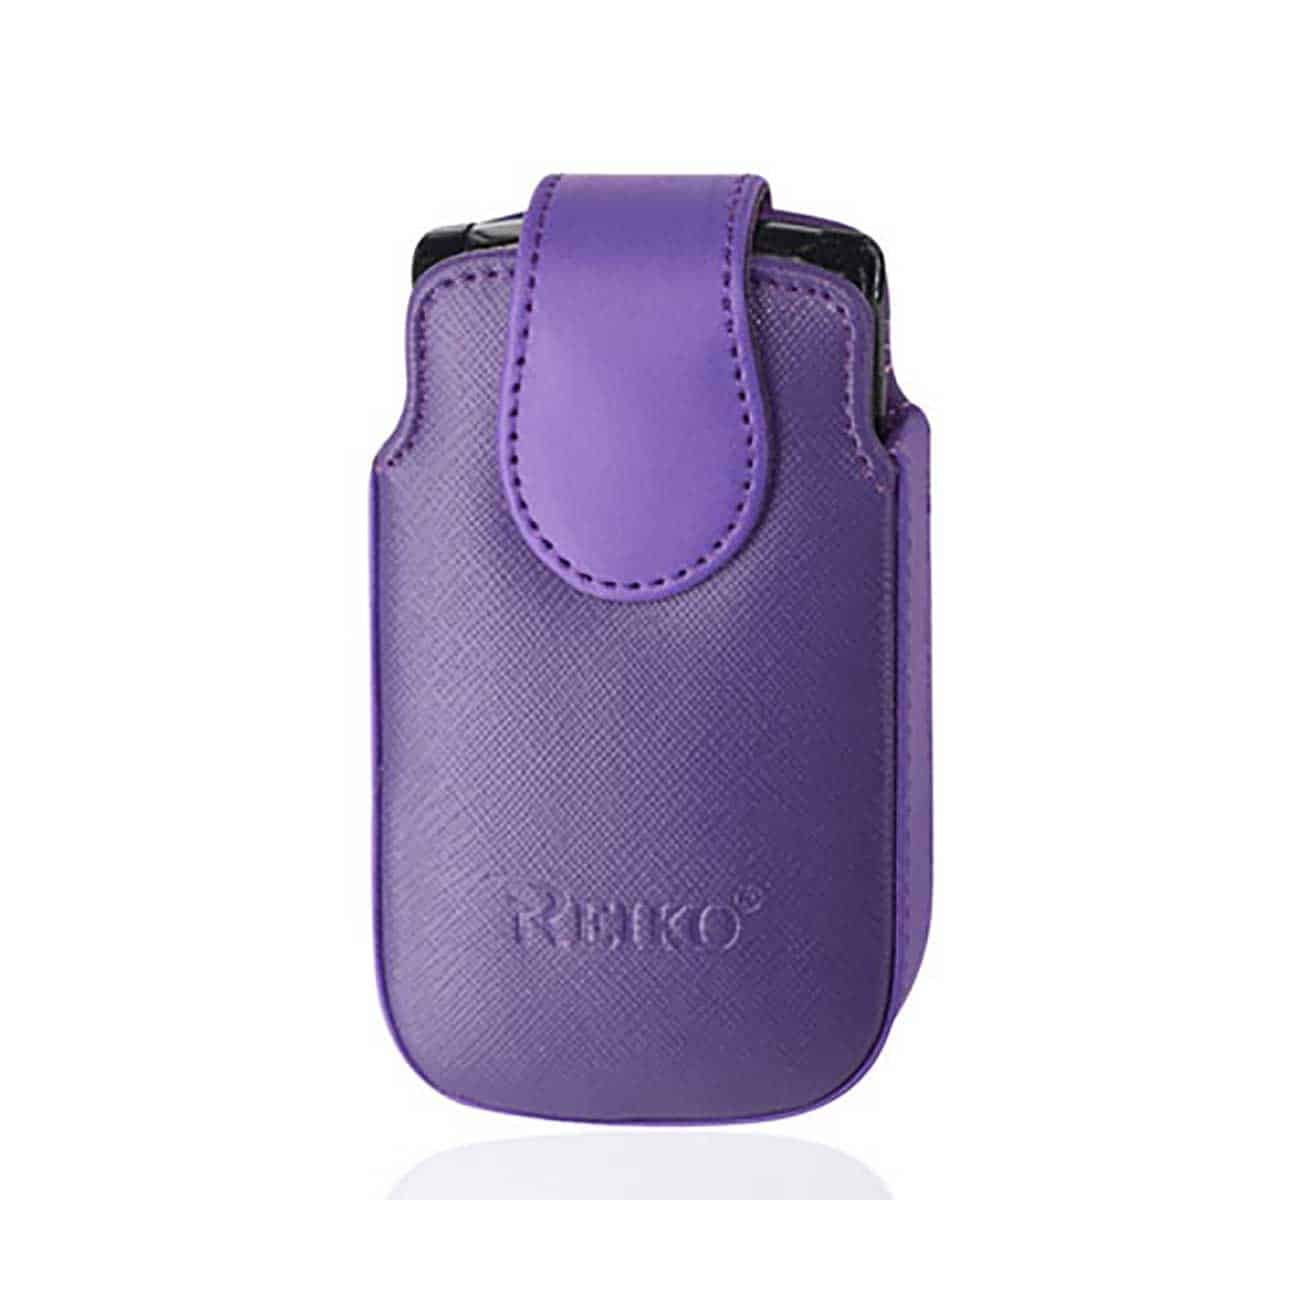 VERTICAL POUCH VP10A MOTOLORA V9 PURPLE 4X0.5X2.1 INCHES